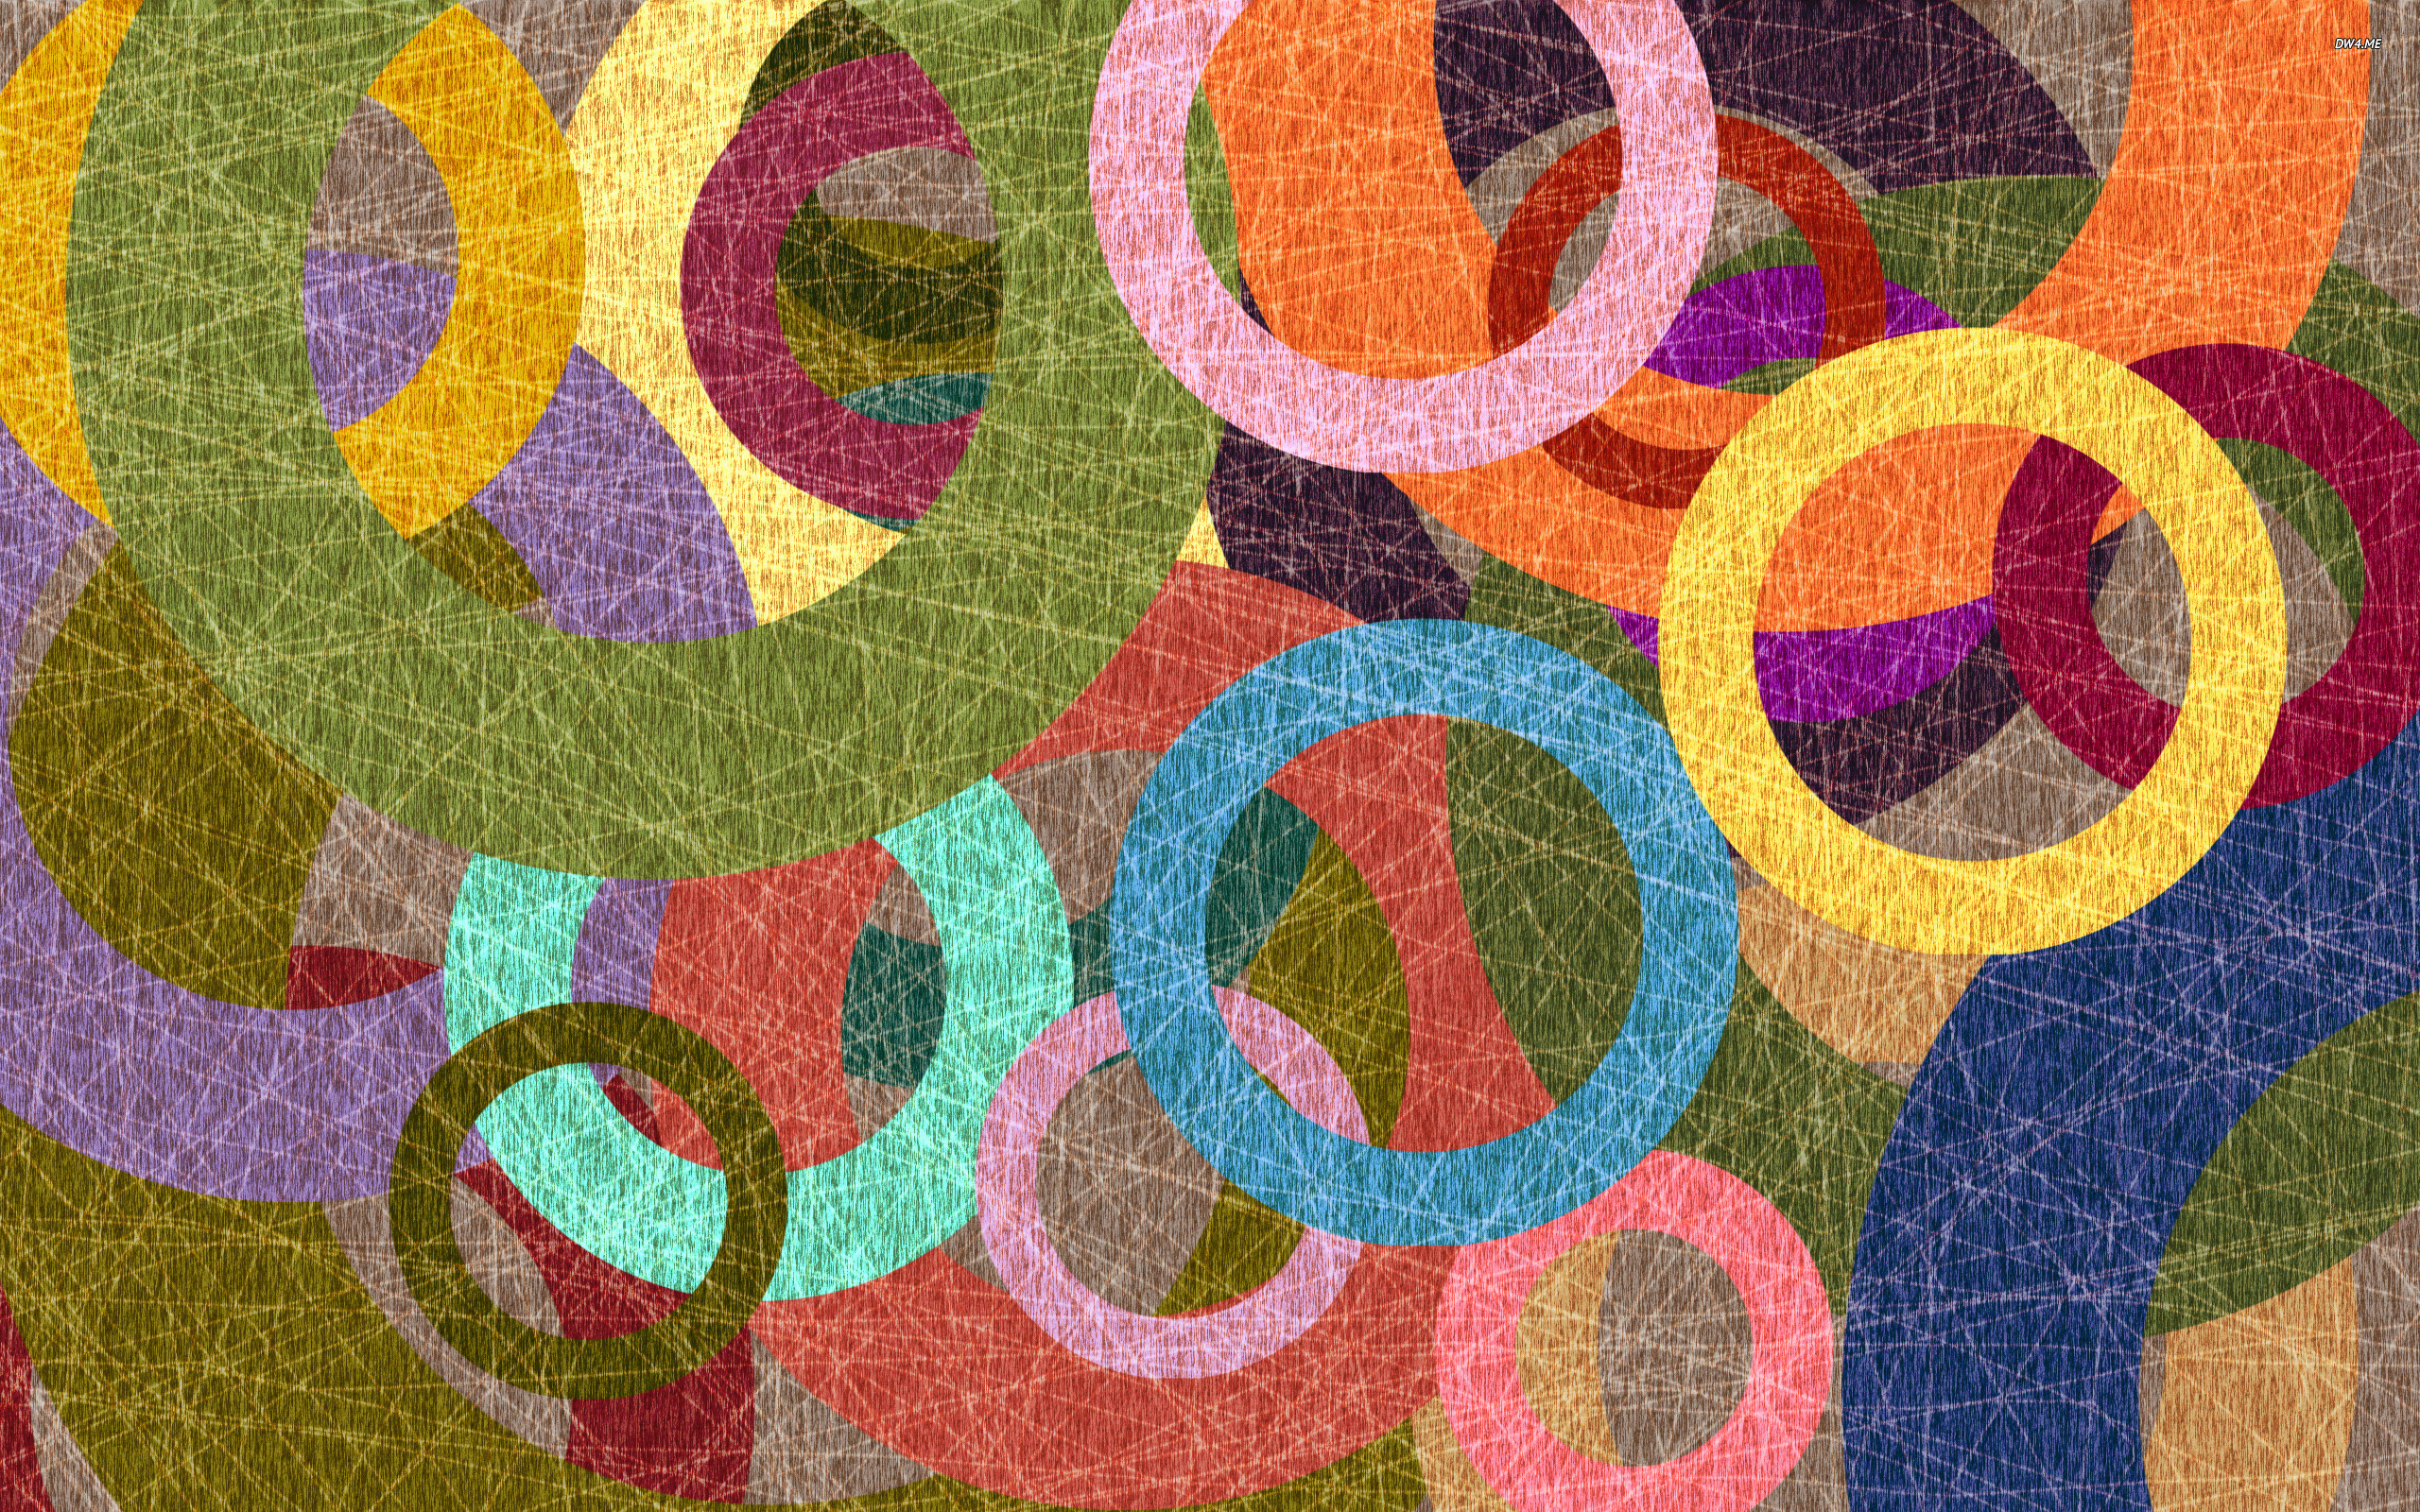 Colorful circles wallpaper - Abstract wallpapers - #702